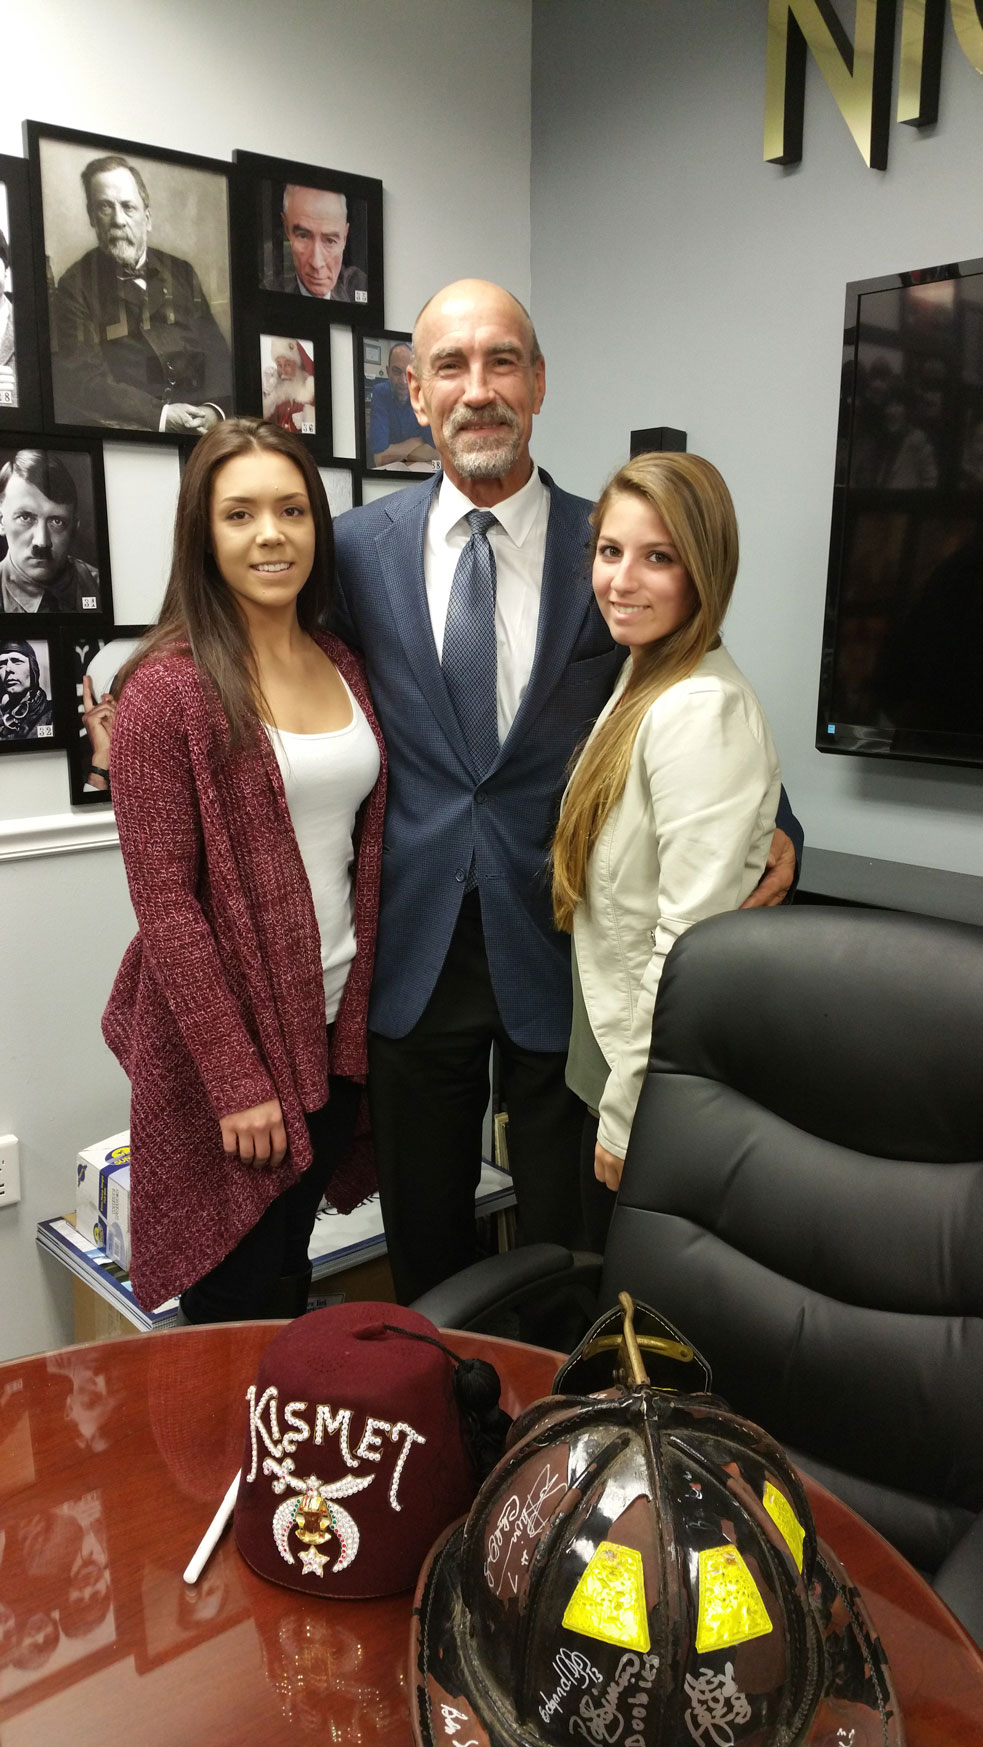 Bobby Nystrom and Nightlife Mag Staff